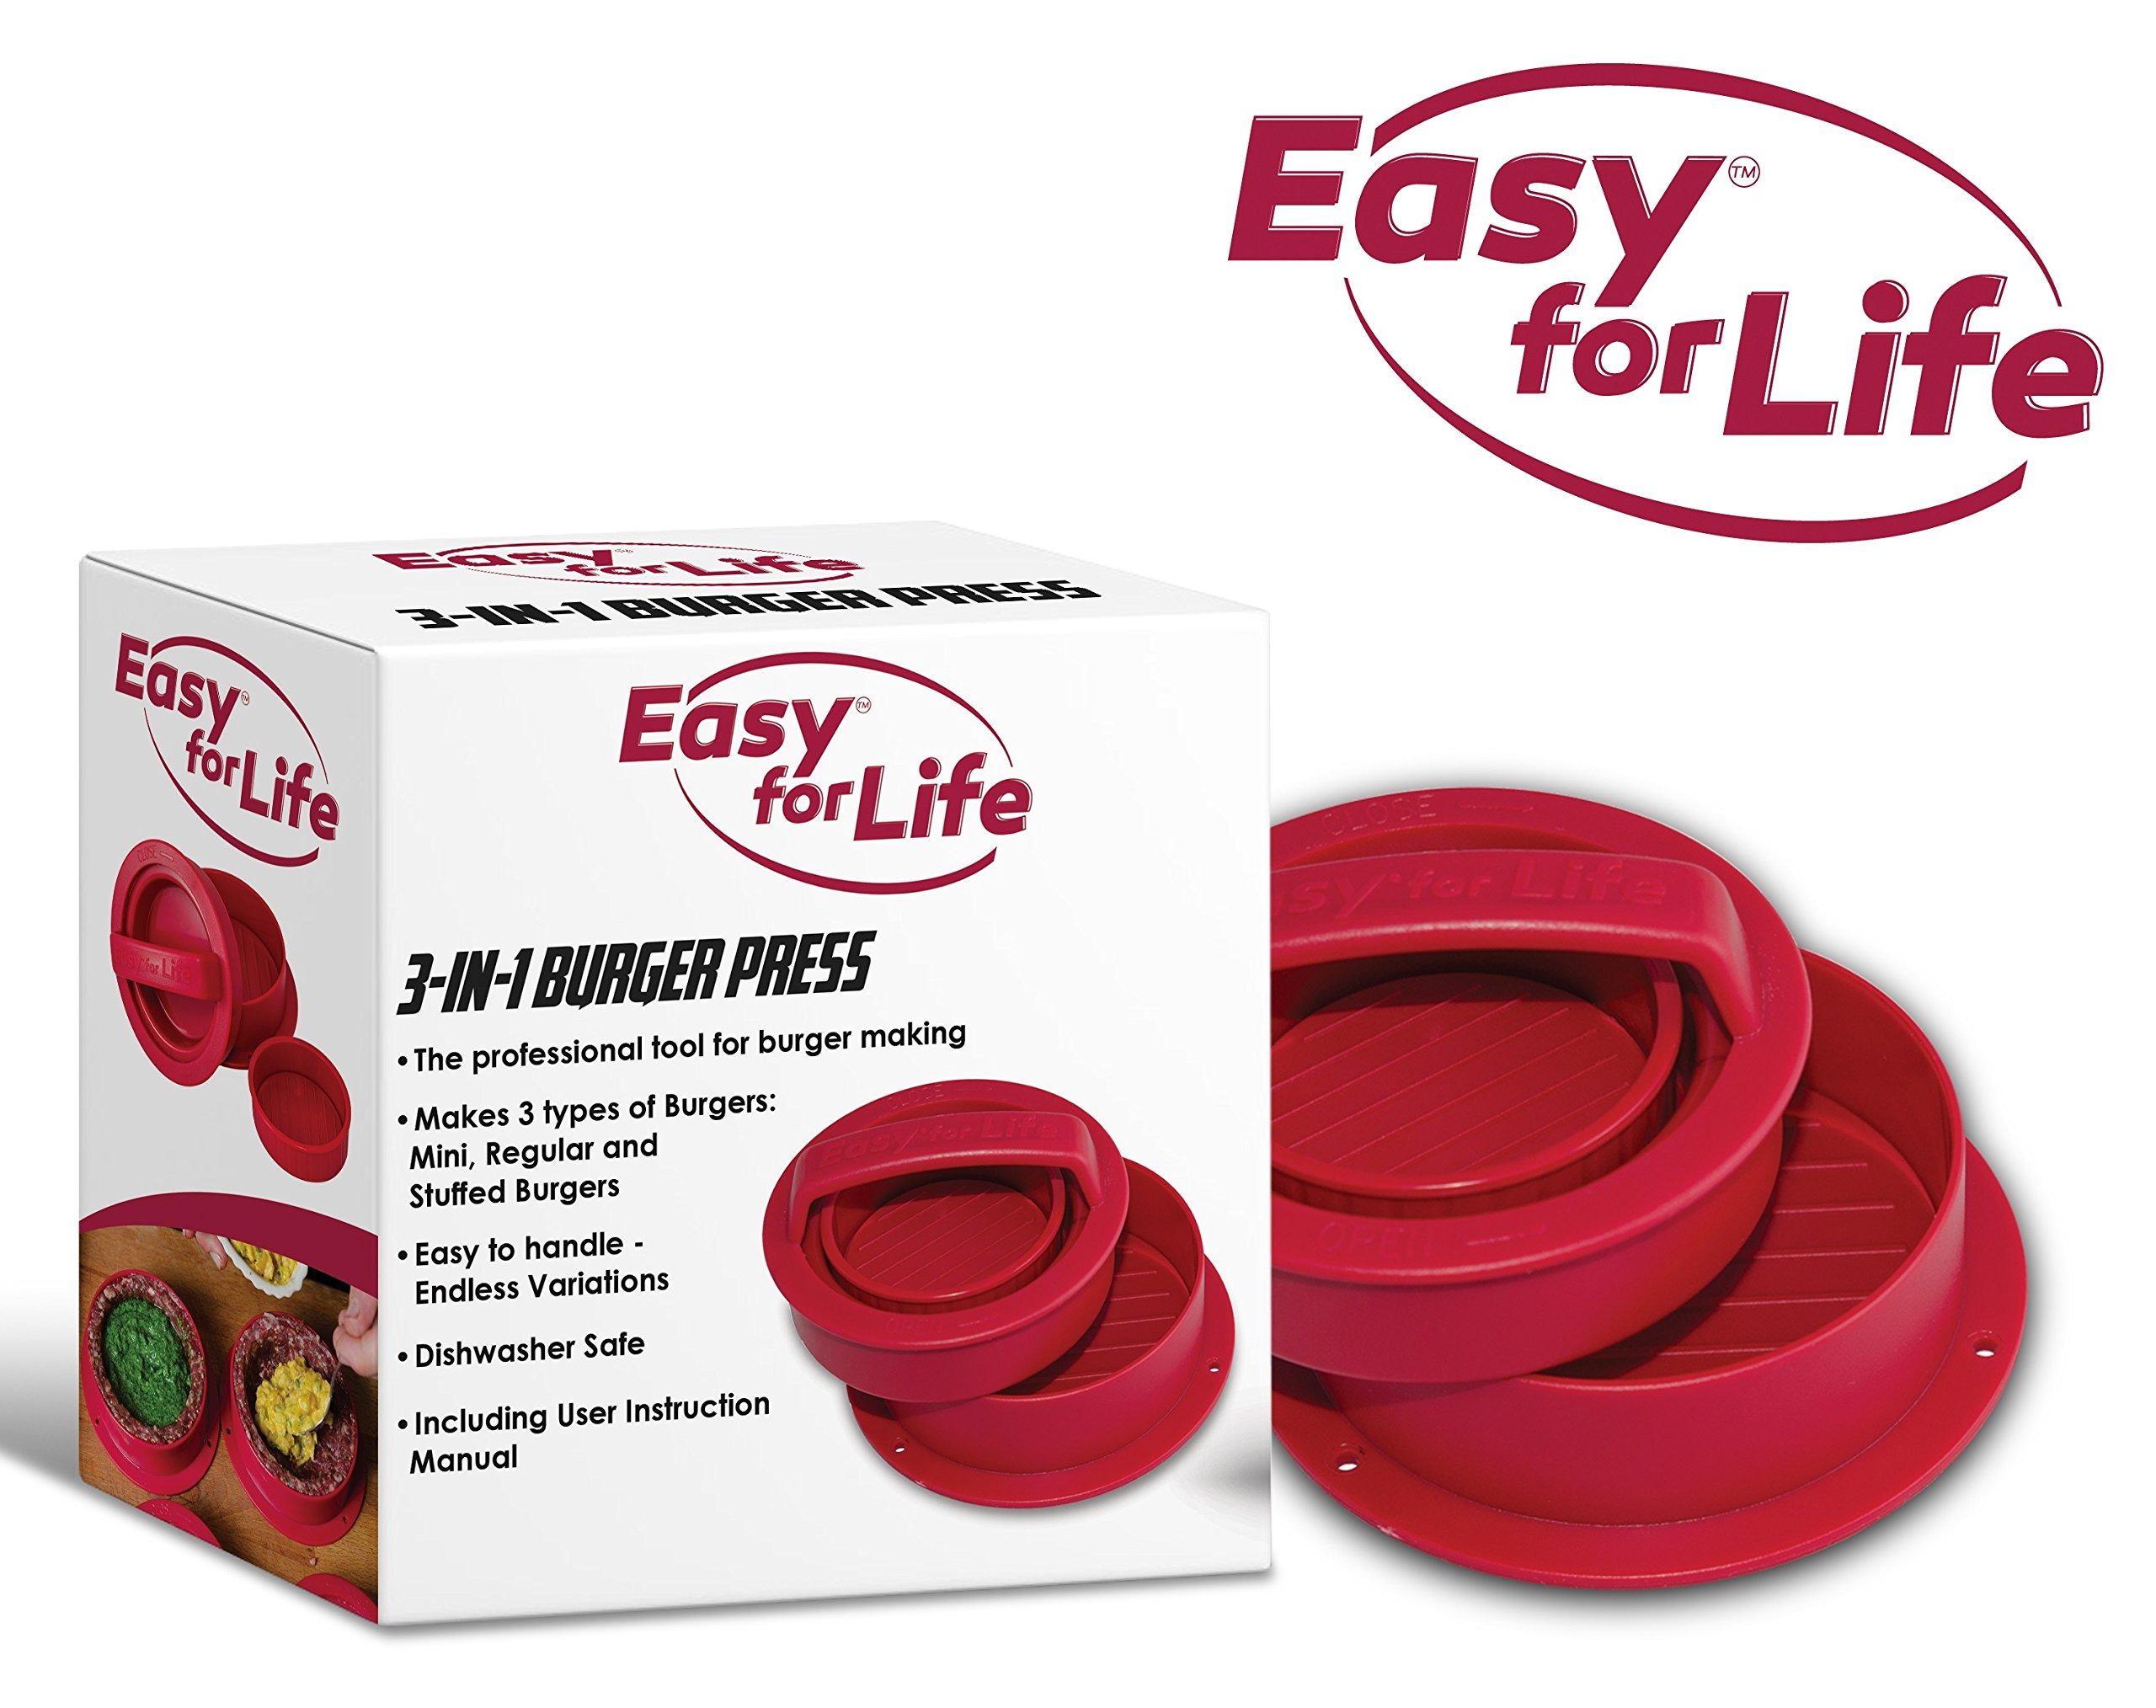 Easy for Life Hamburger Shaper Stuffed Burger Press Kit 3 in 1 - Exclusive Red Color, Non Stick Hamburger Maker, Homemade Patties & Sliders, Patty Molds, Veggie, Best Burger Press Set